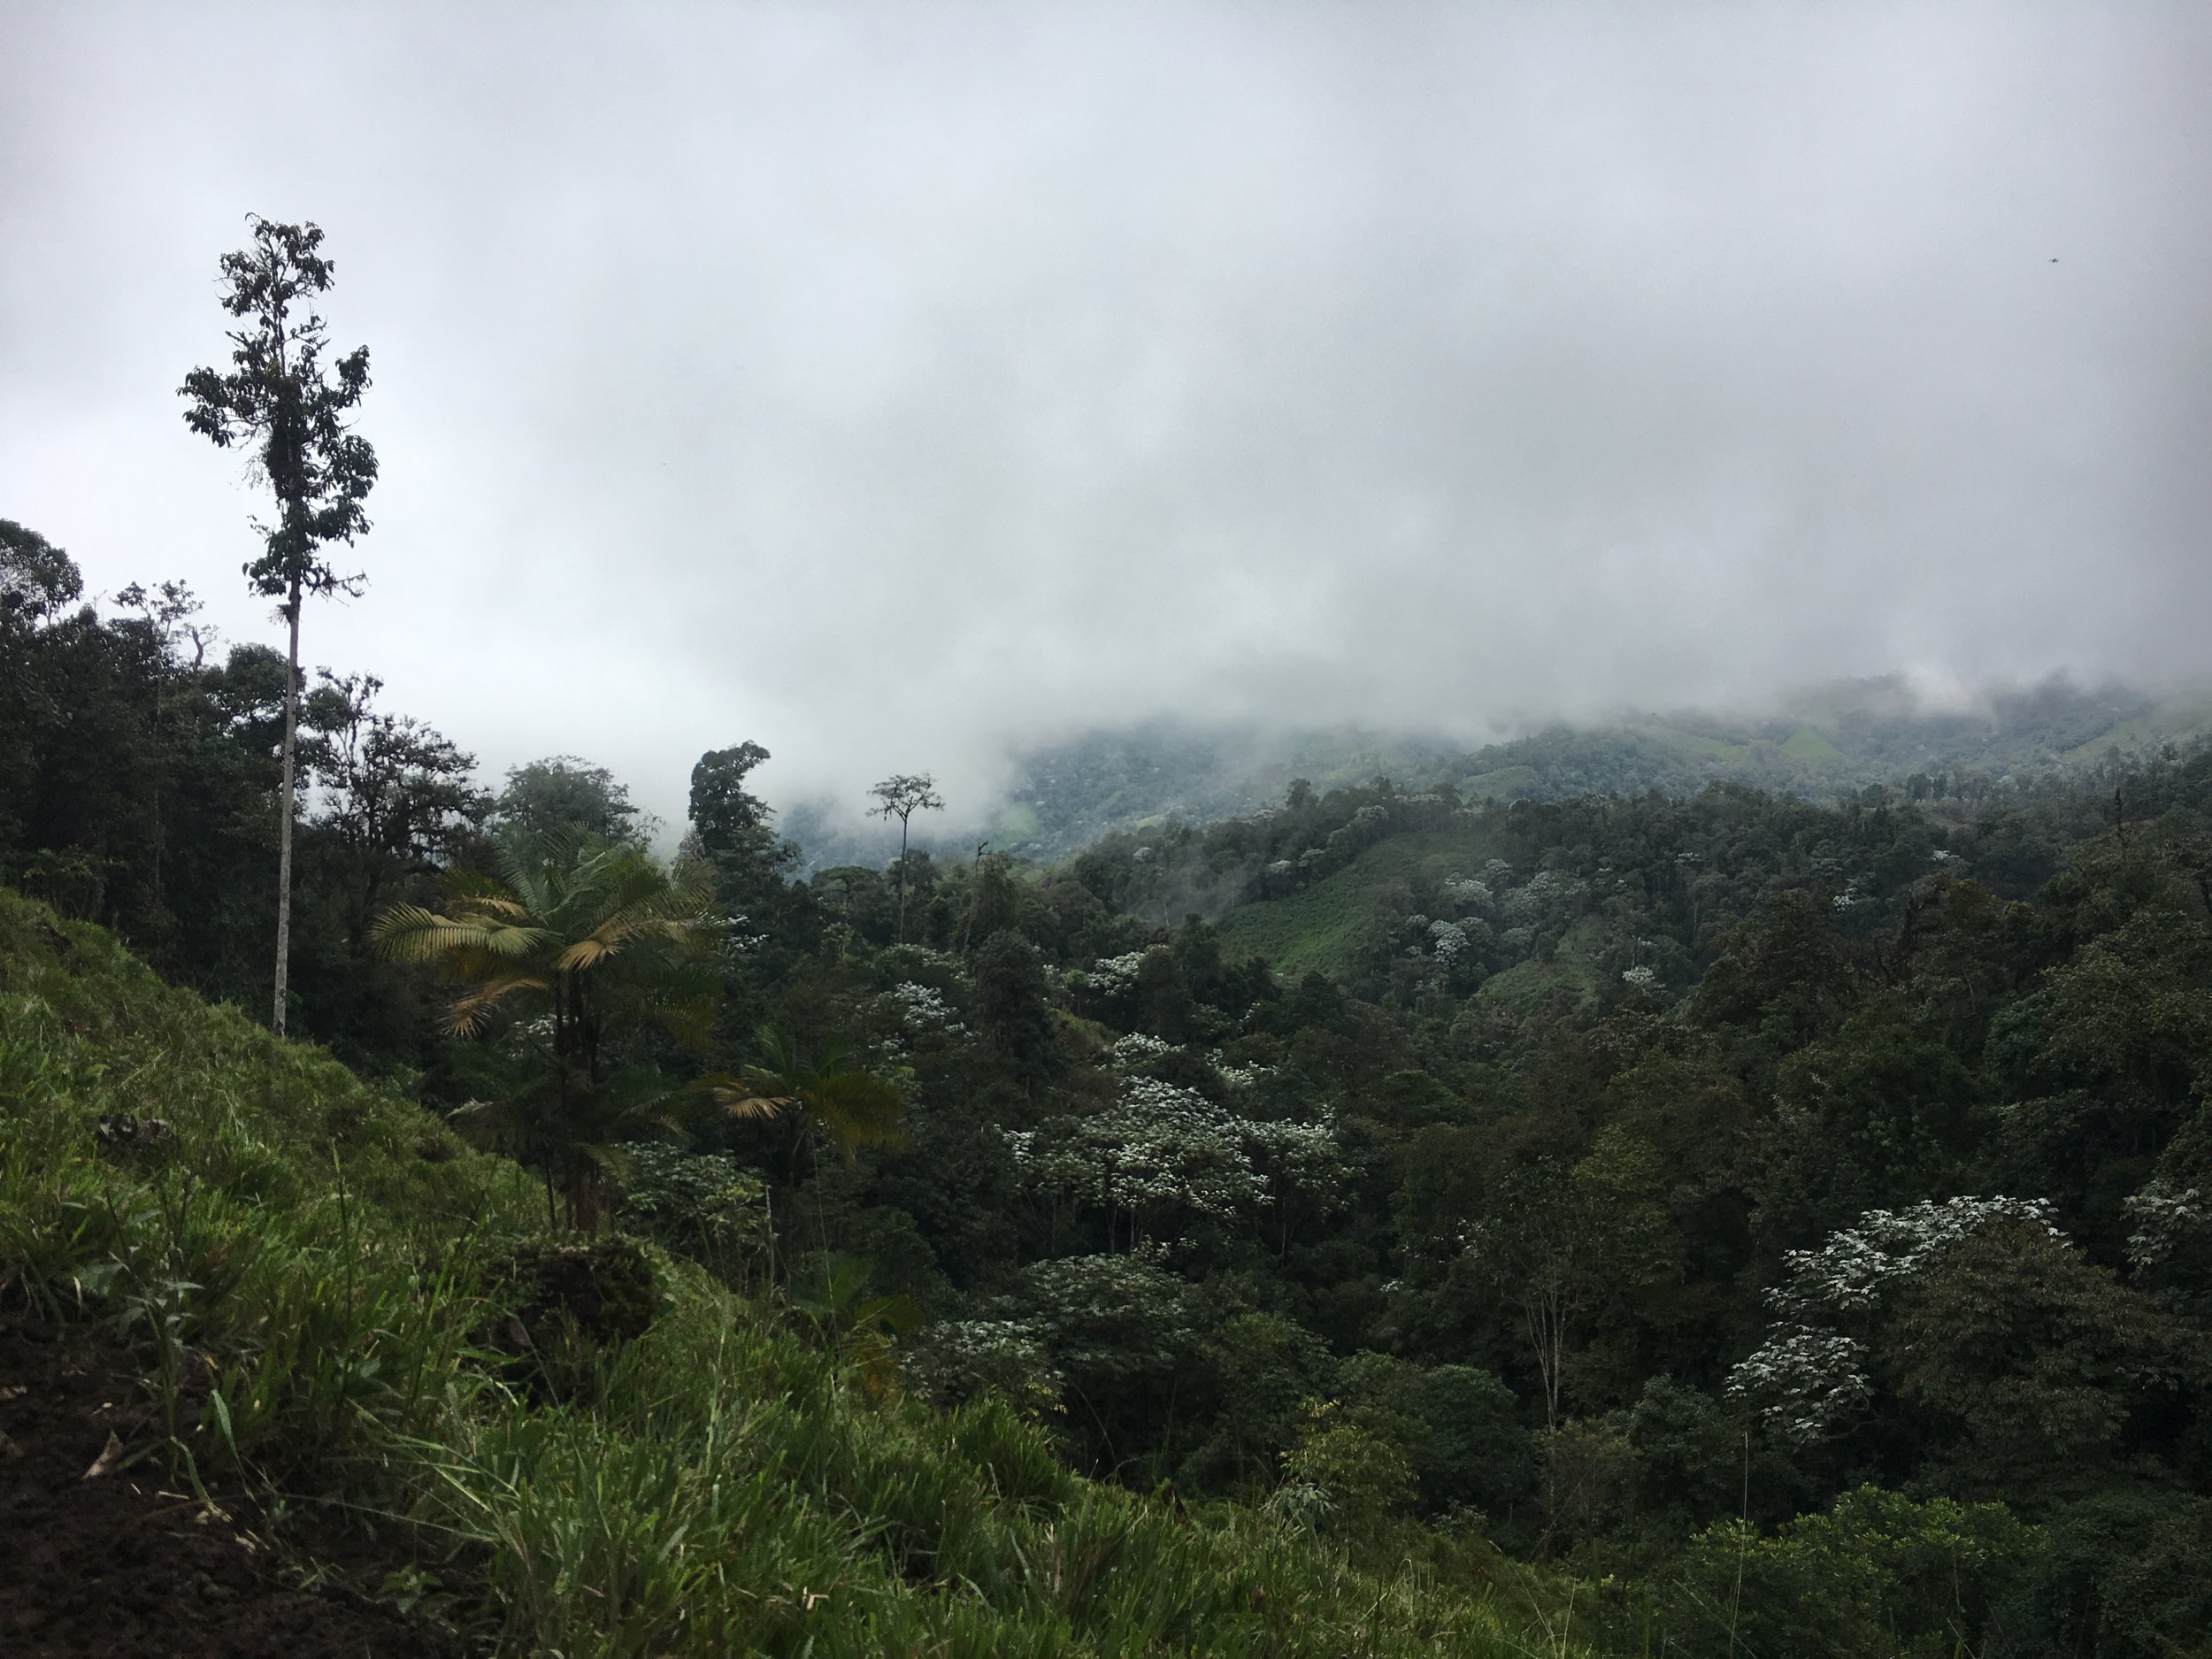 The Cloud Forest (Photo Credit: Carpe Diem)